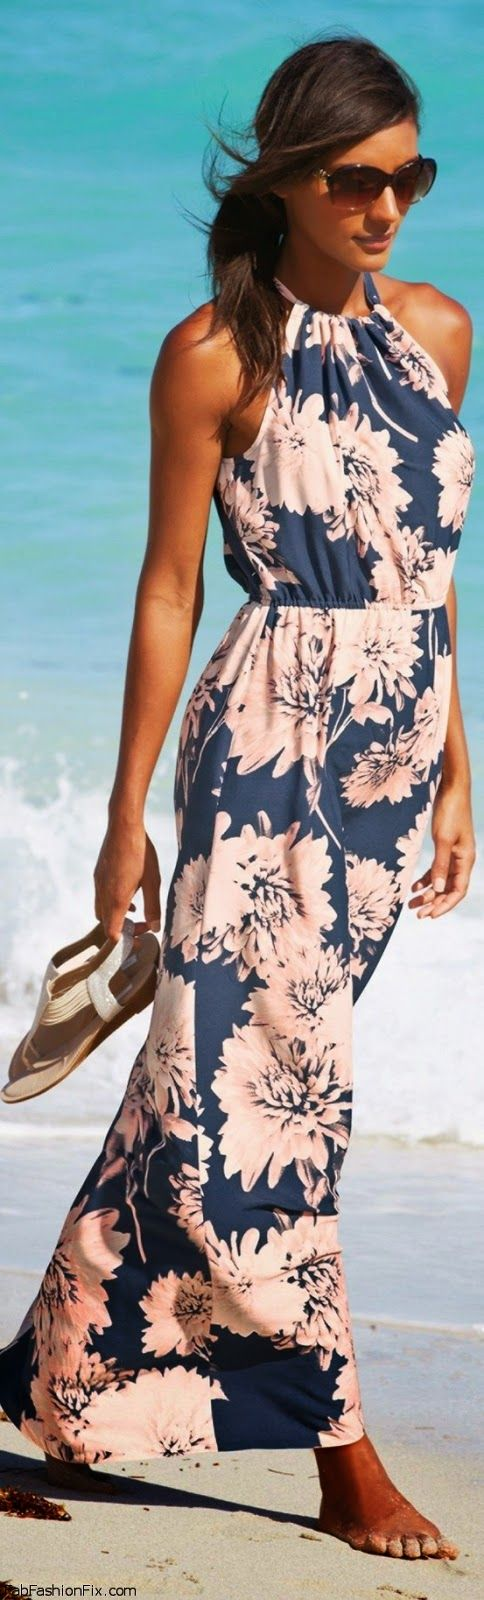 Blue Floral Maxi Dress. #holiday #maxi #beach